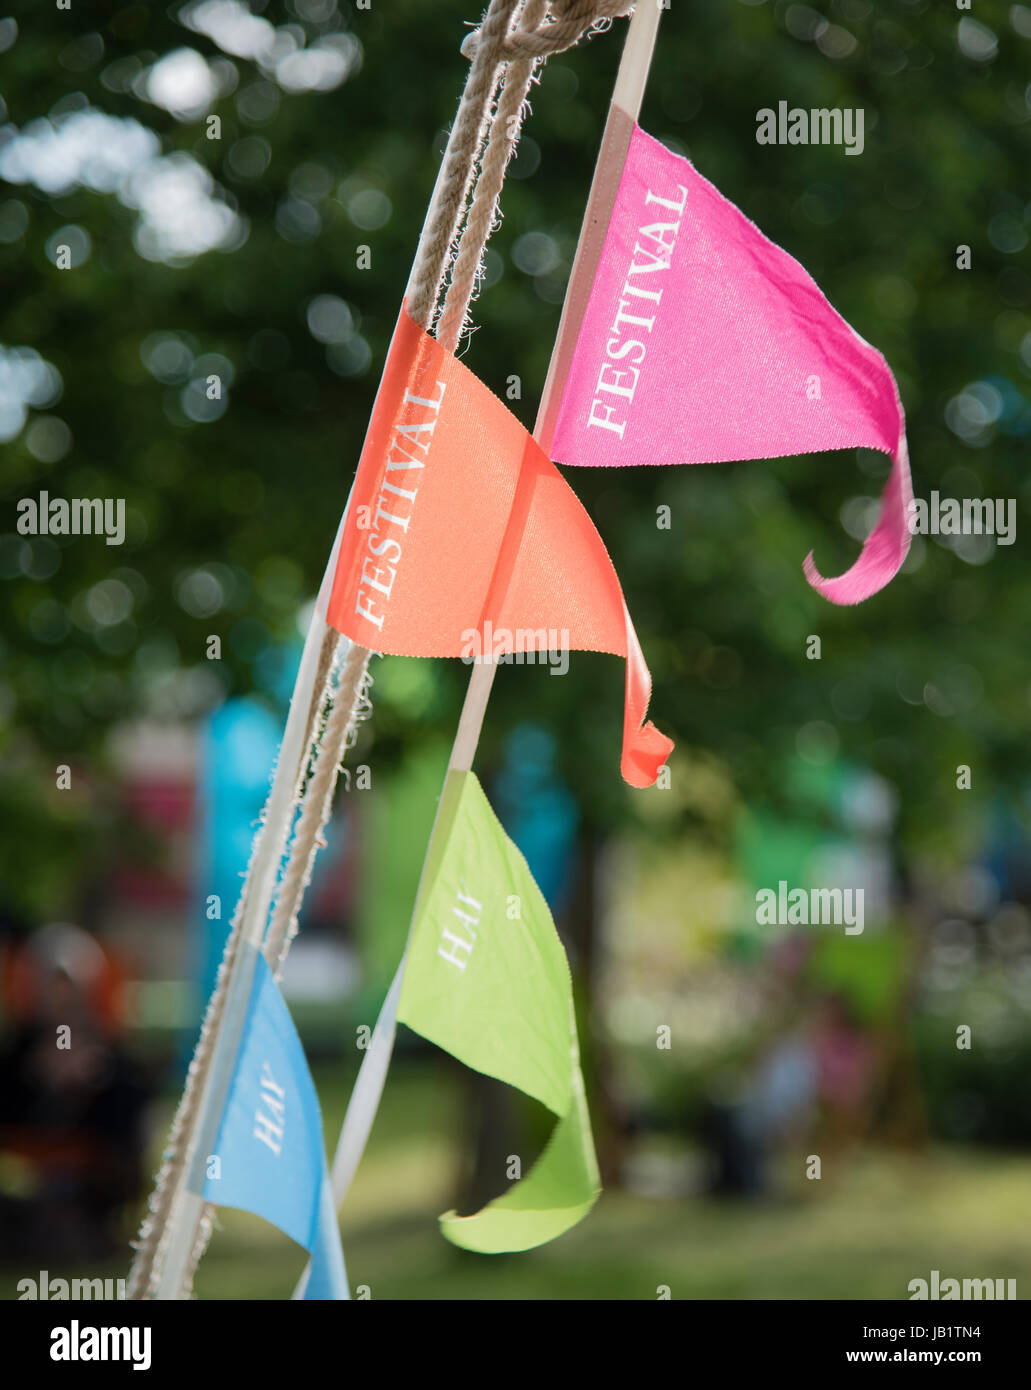 Bunting at Hay Festival 2017 - Stock Image